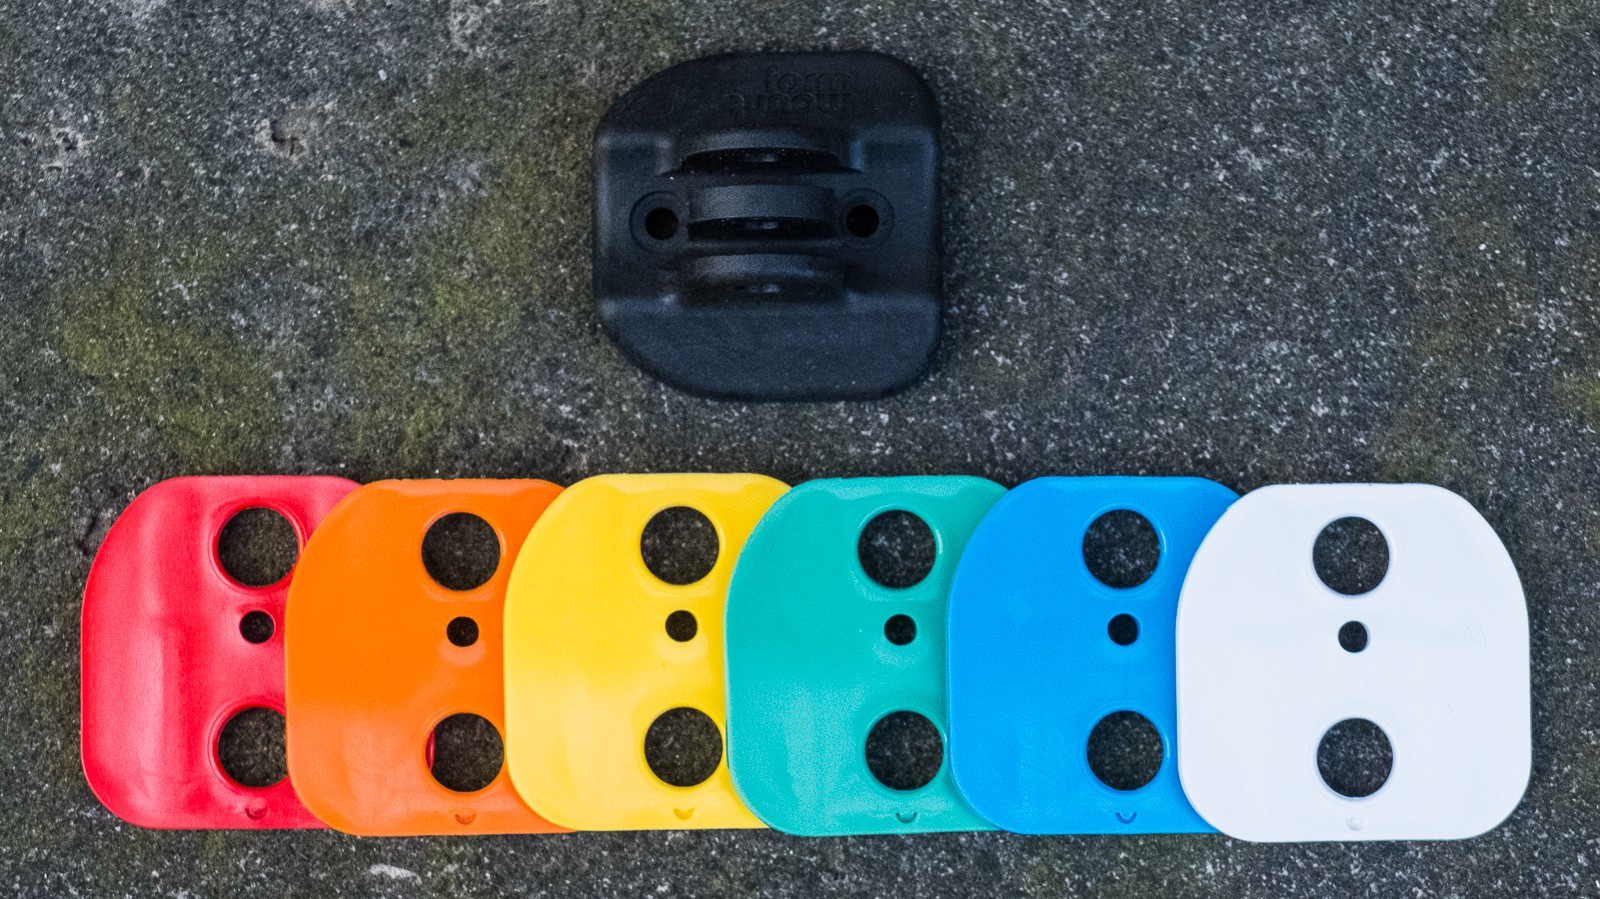 Early backers will receive a free GoPro mount and coloured chips to customise their FormMount. These are also available to purchase separately.